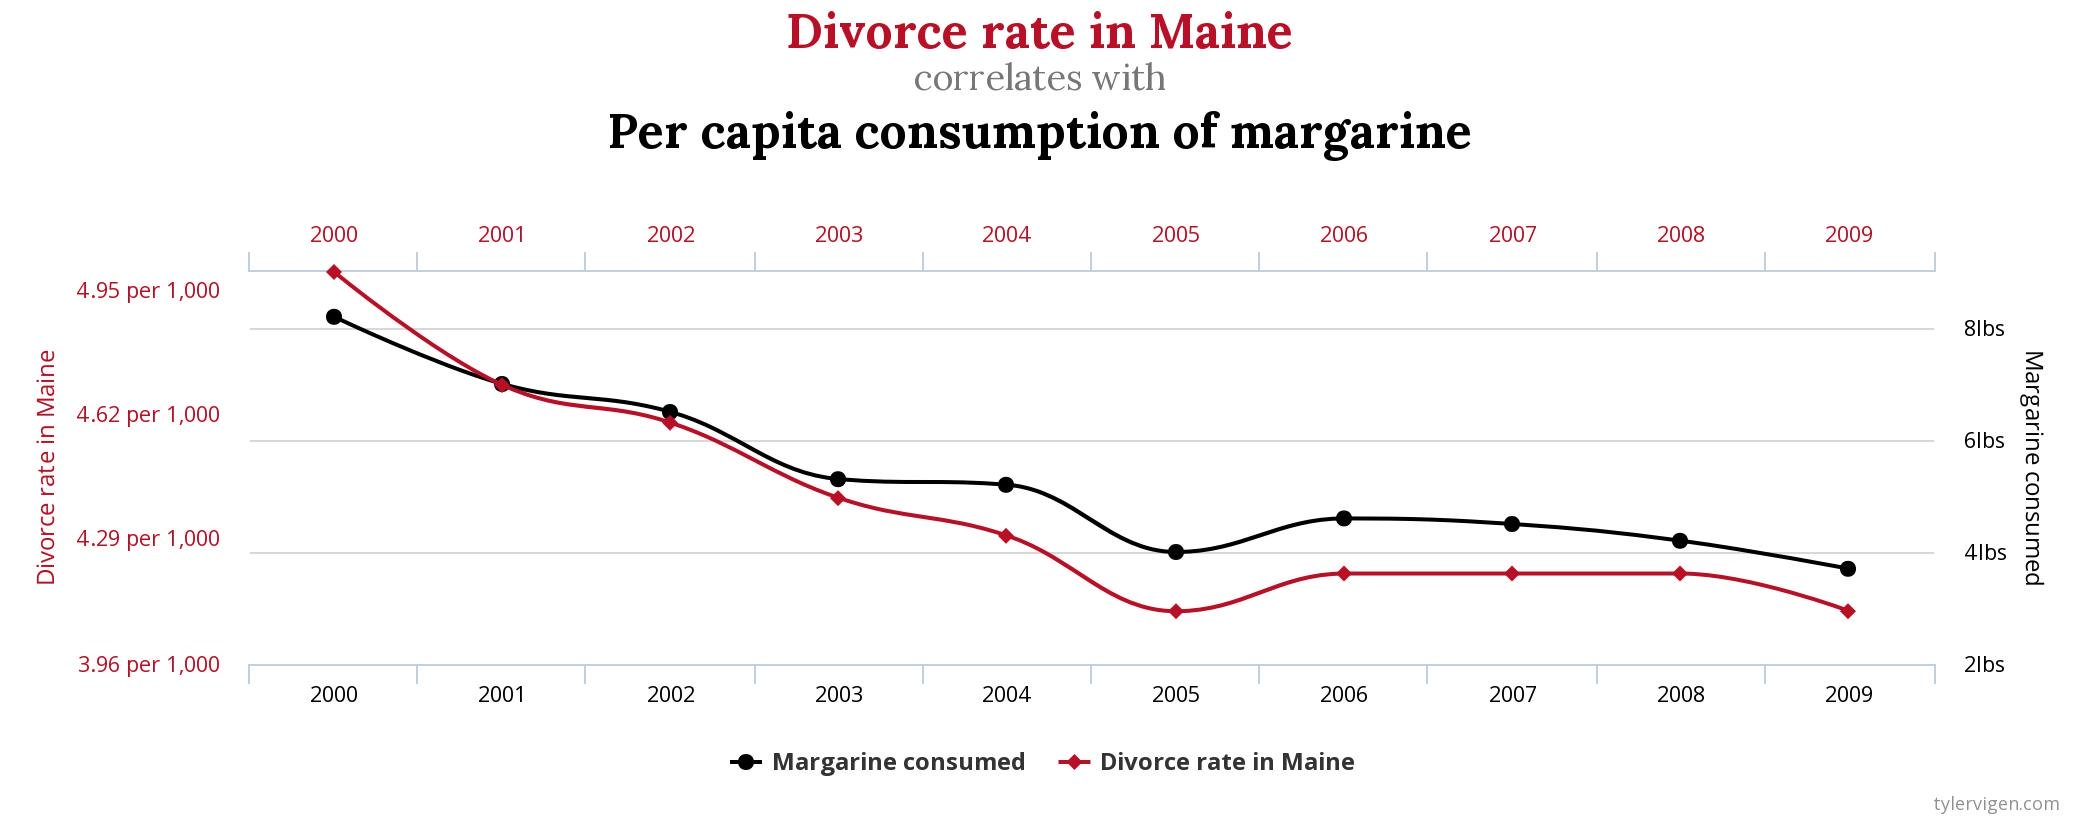 Chart showing a strong correlation between the divorce rate in Maine and margarine consumption